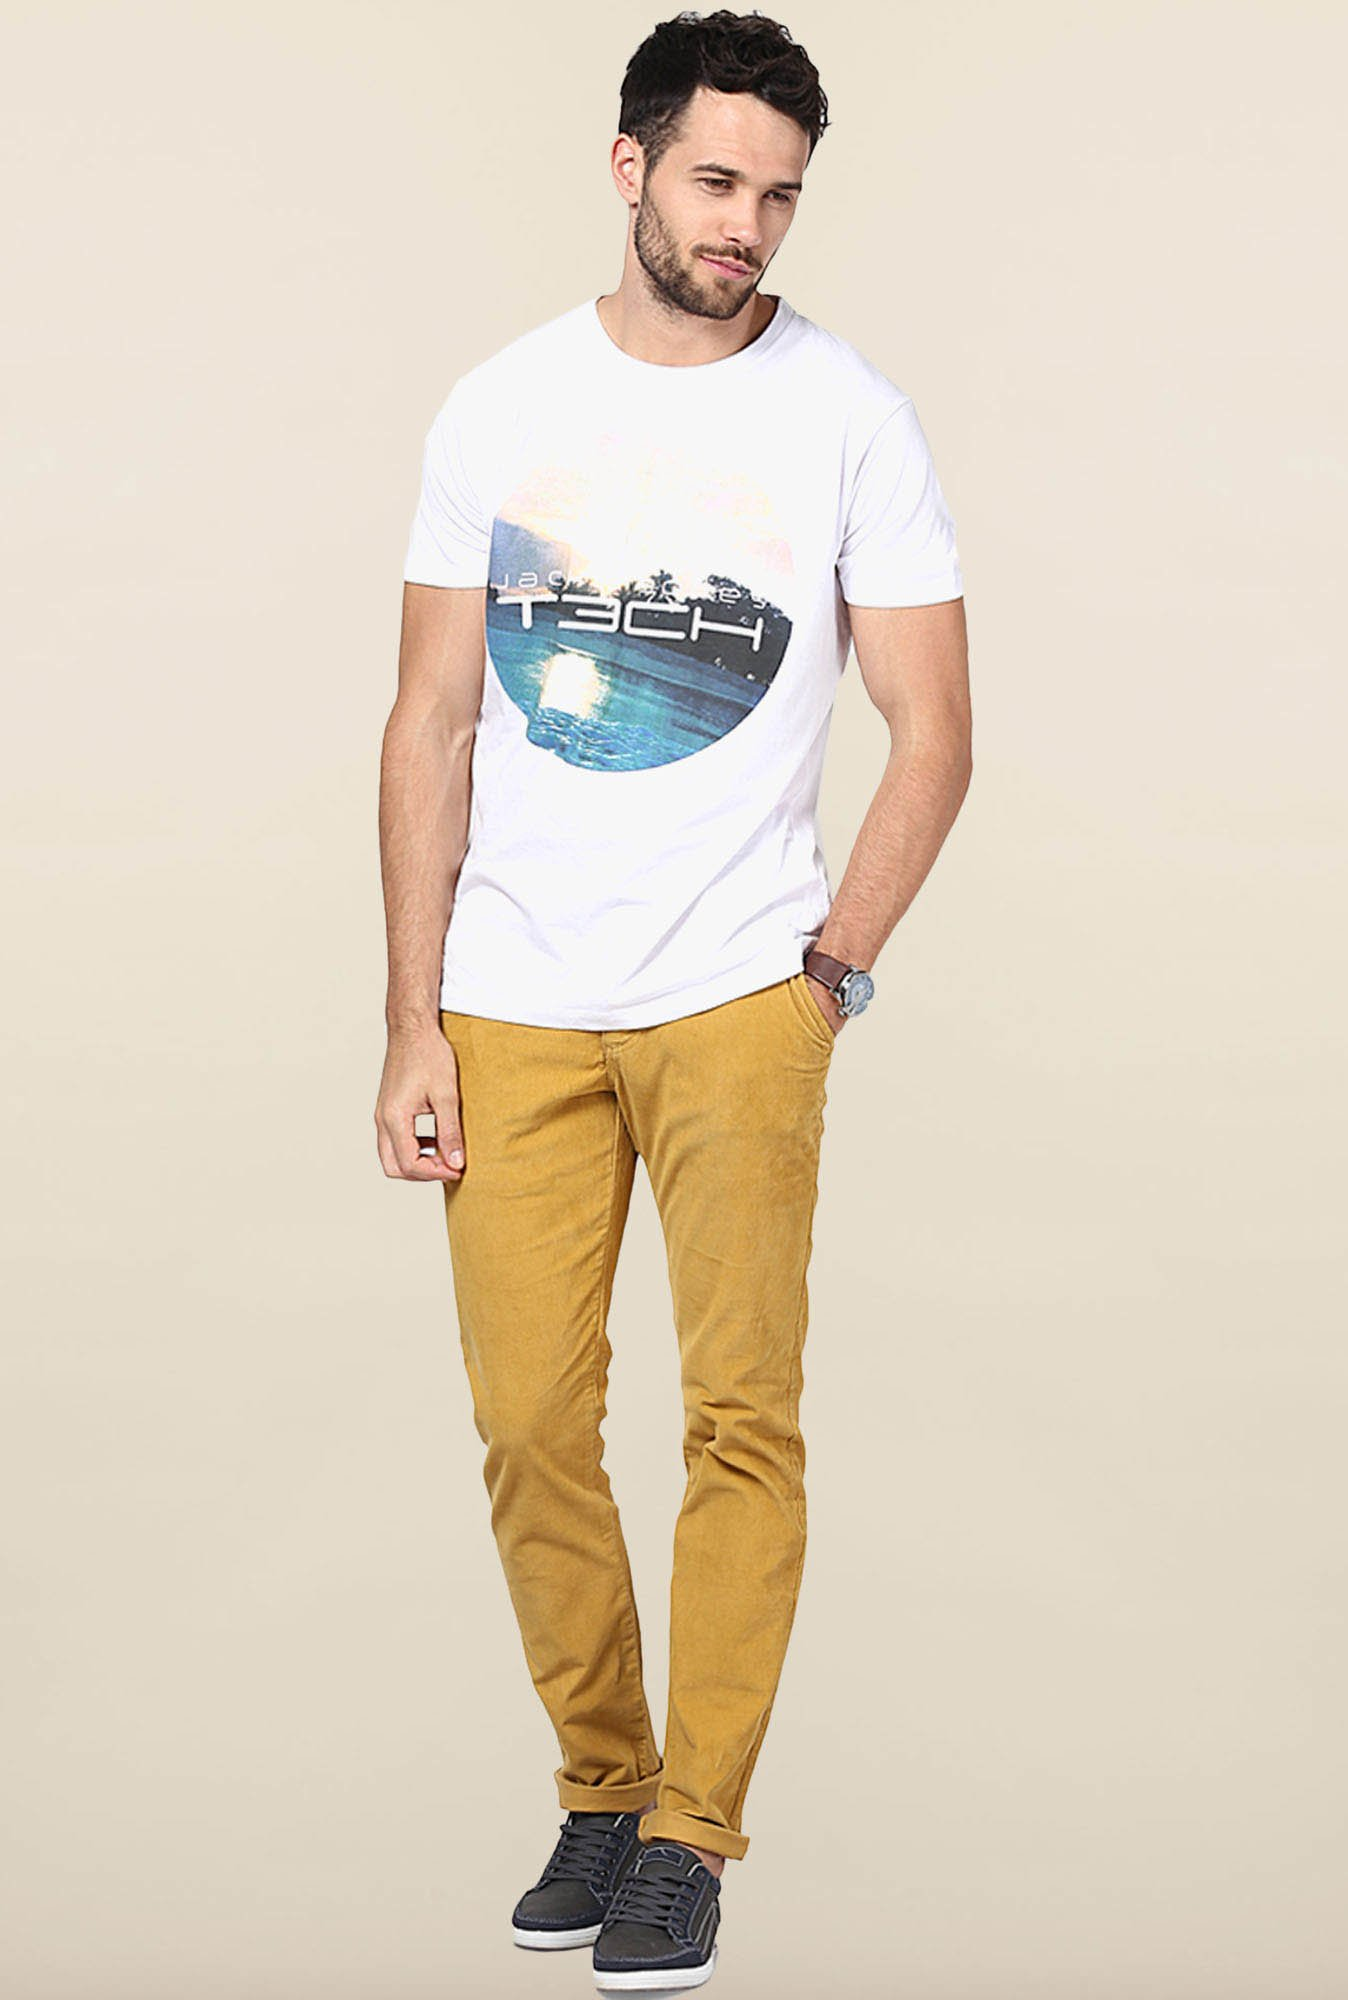 Jack & Jones White Crew Neck T-Shirt